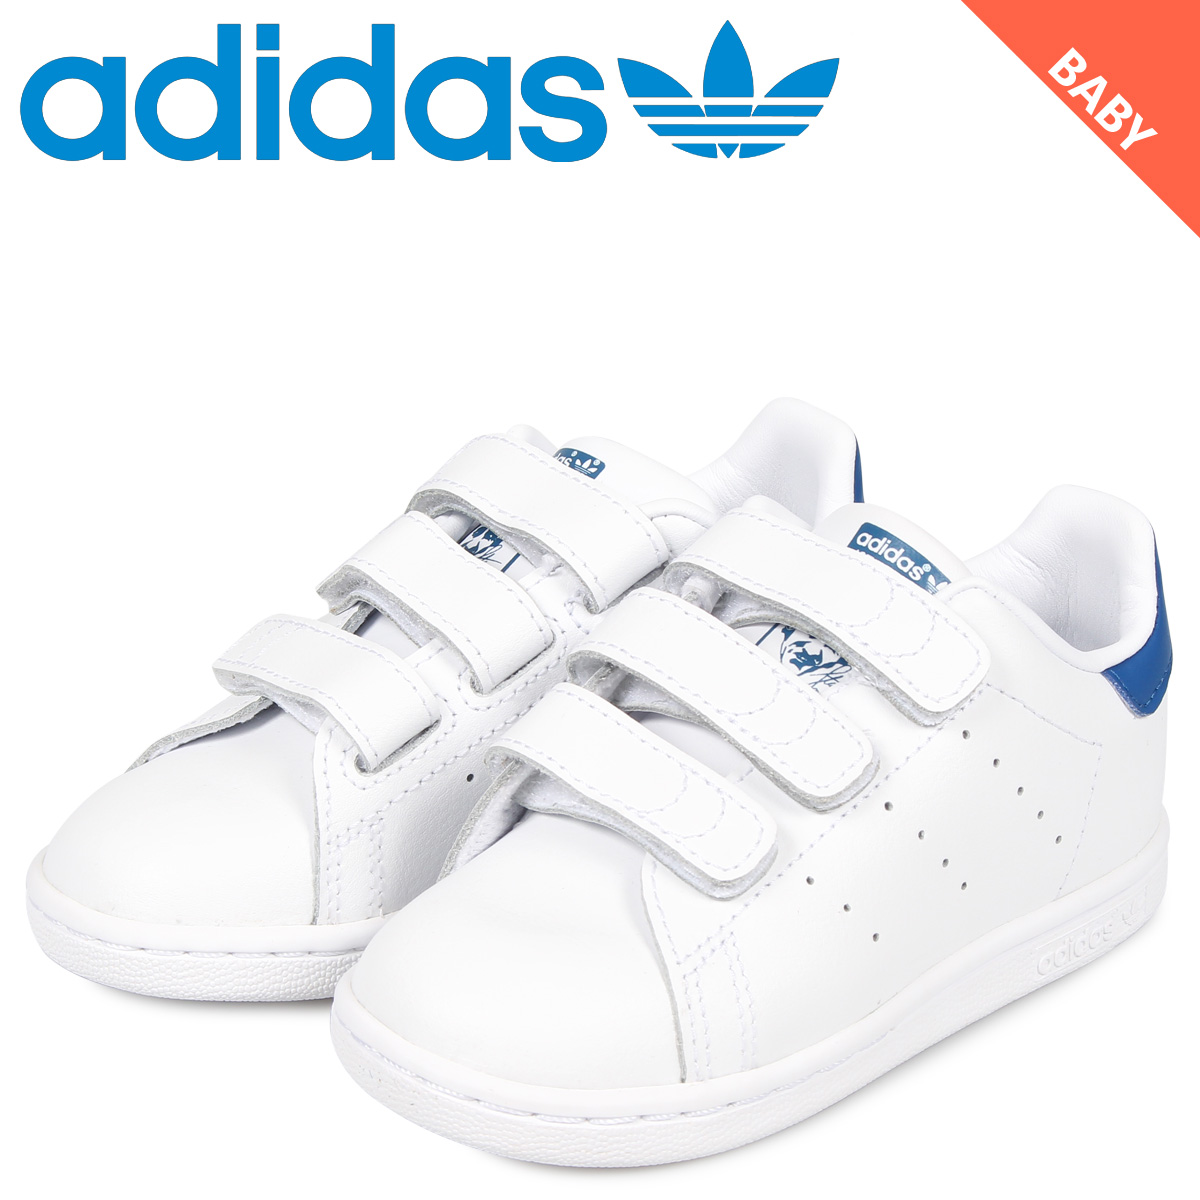 adidas Originals Adidas originals Stan Smith sneakers baby kids STAN SMITH CF I white white S74782